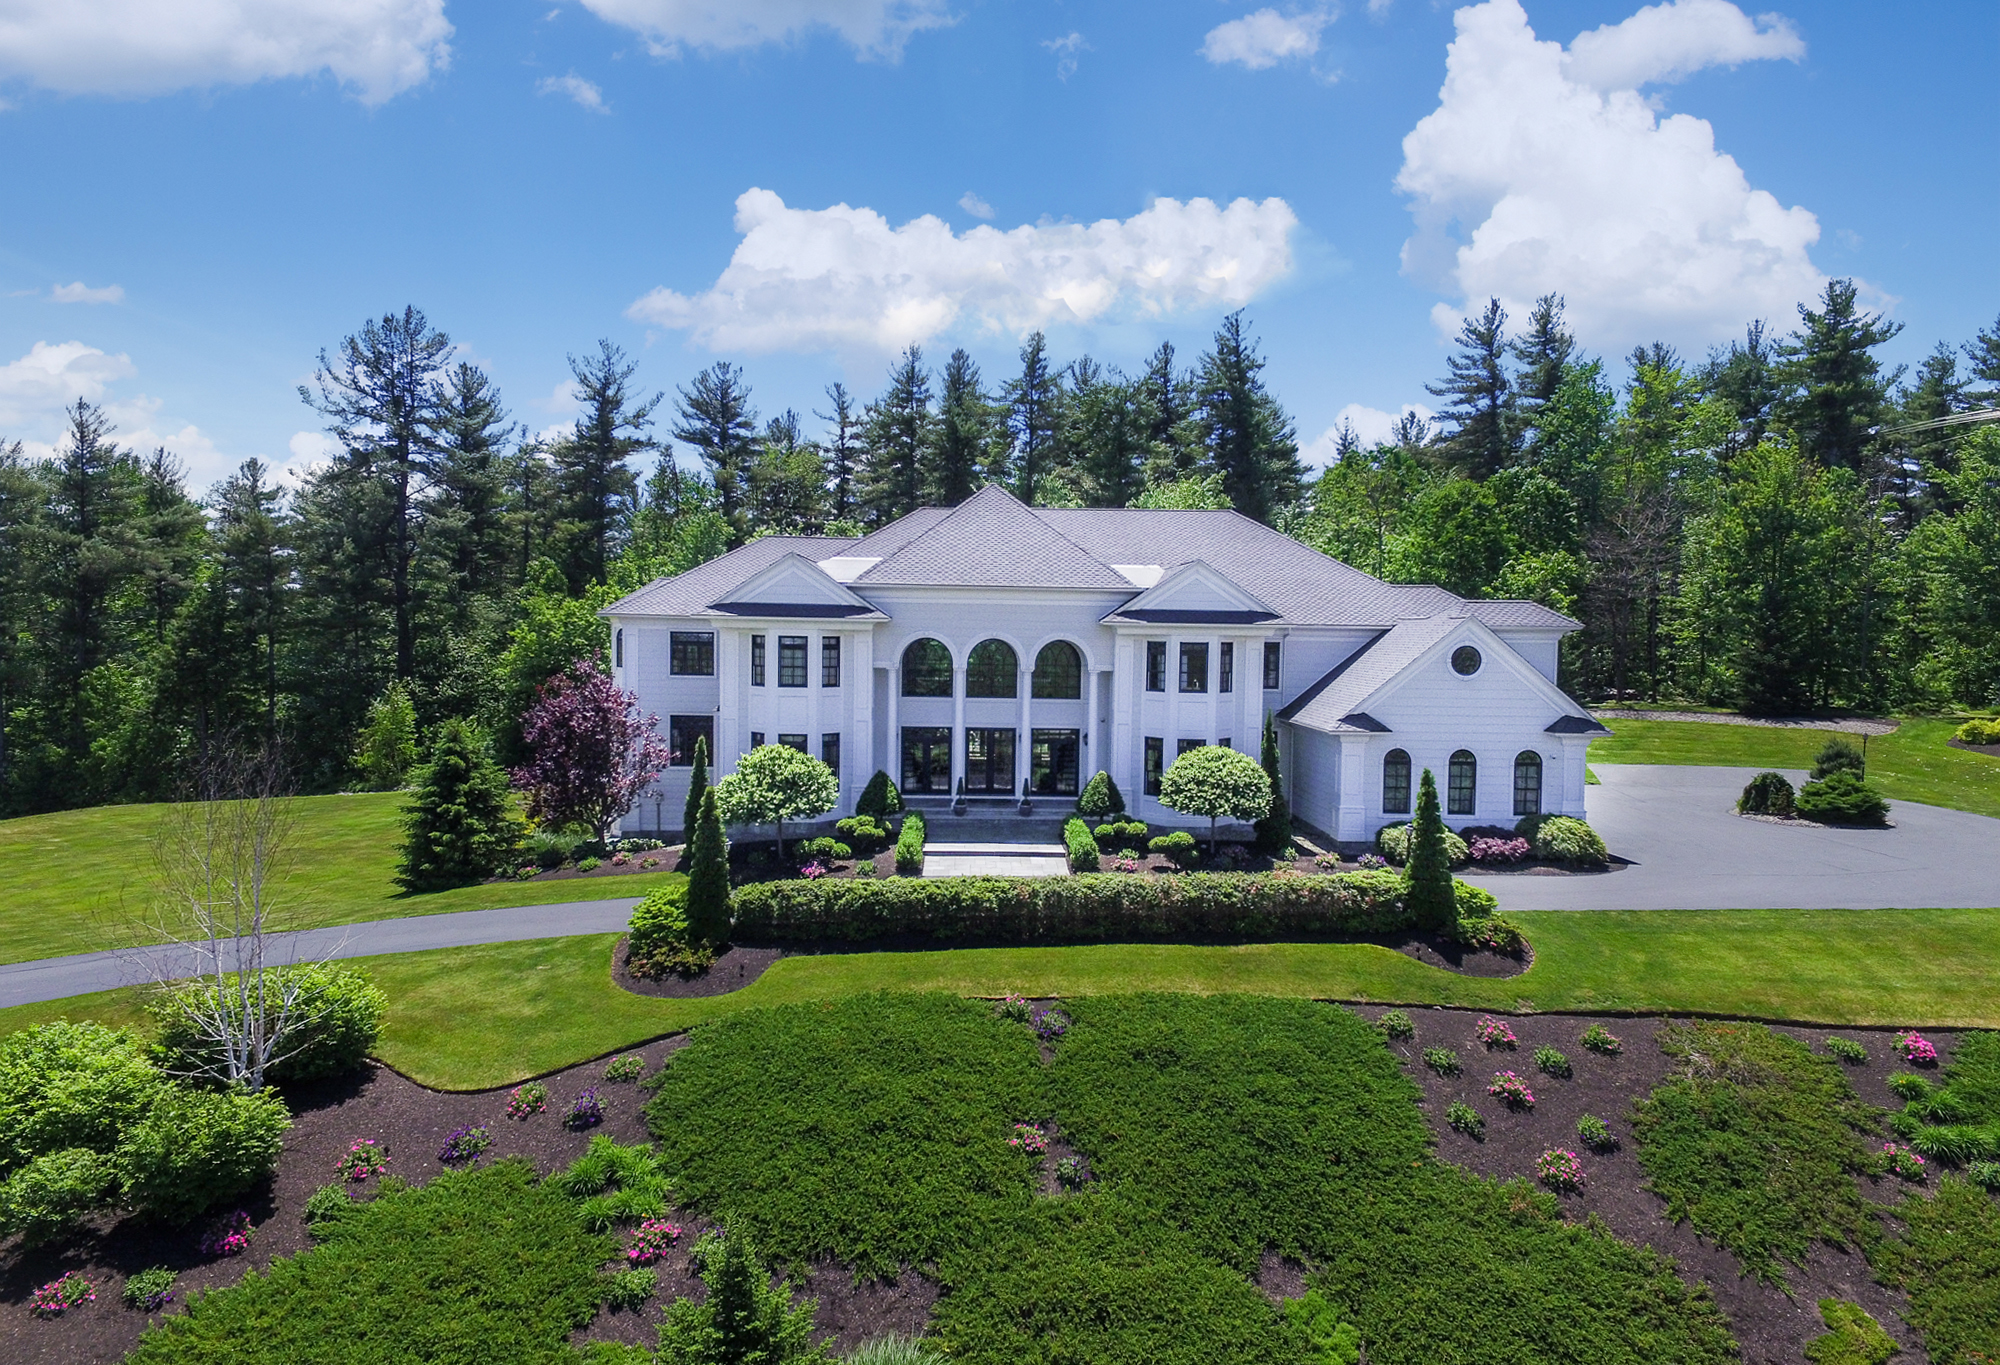 Single Family Home for Sale at 20 Burgundy Terrace, Bedford Bedford, New Hampshire, 03110 United States